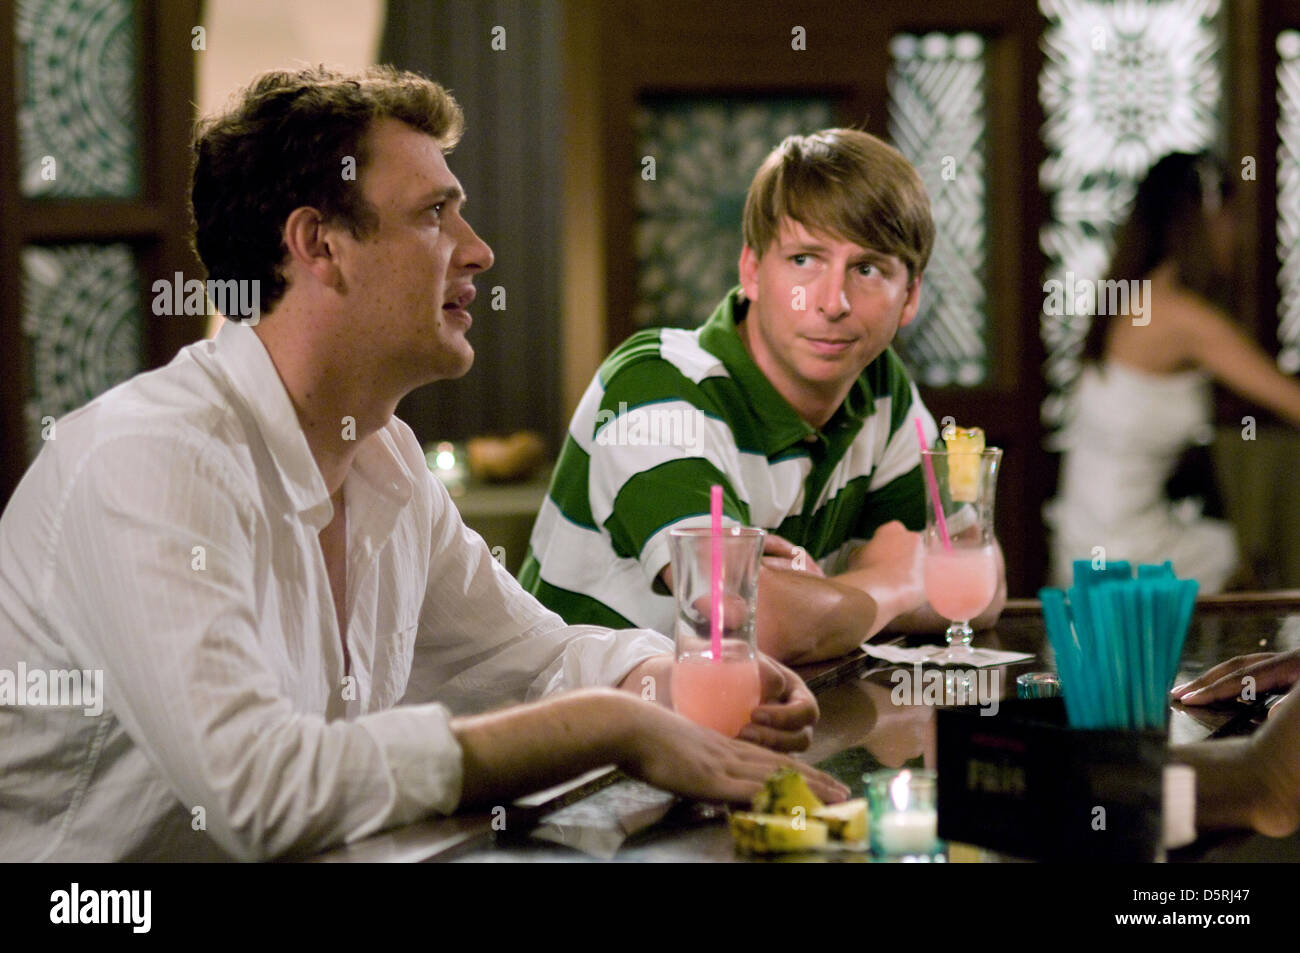 Jason Segel Jack Mcbrayer Forgetting Sarah Marshall 2008 Stock